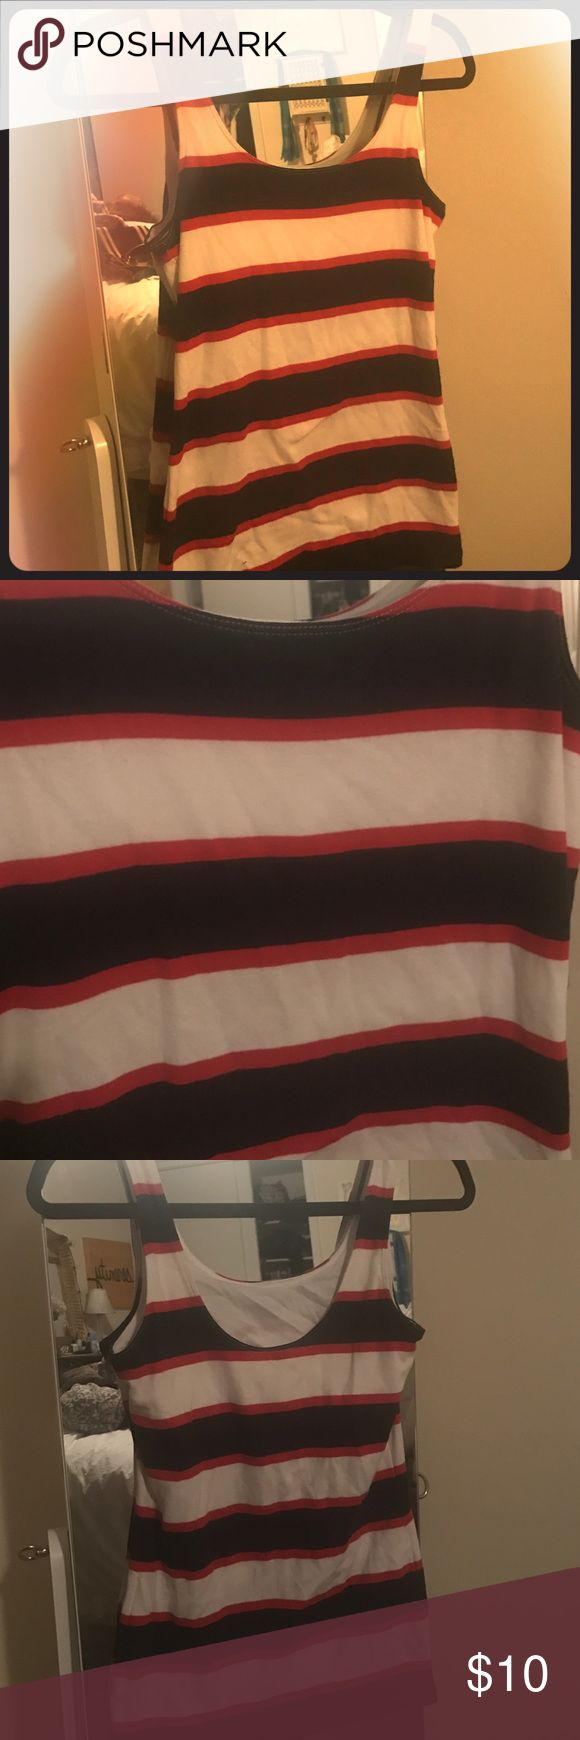 Banana Republic, XS, Nautical tank Banana Republic, XS, Nautical tank. Navy, white and red striped. Built in cami bra for support with low scoop back! Perfect condition! Banana Republic Tops Tank Tops